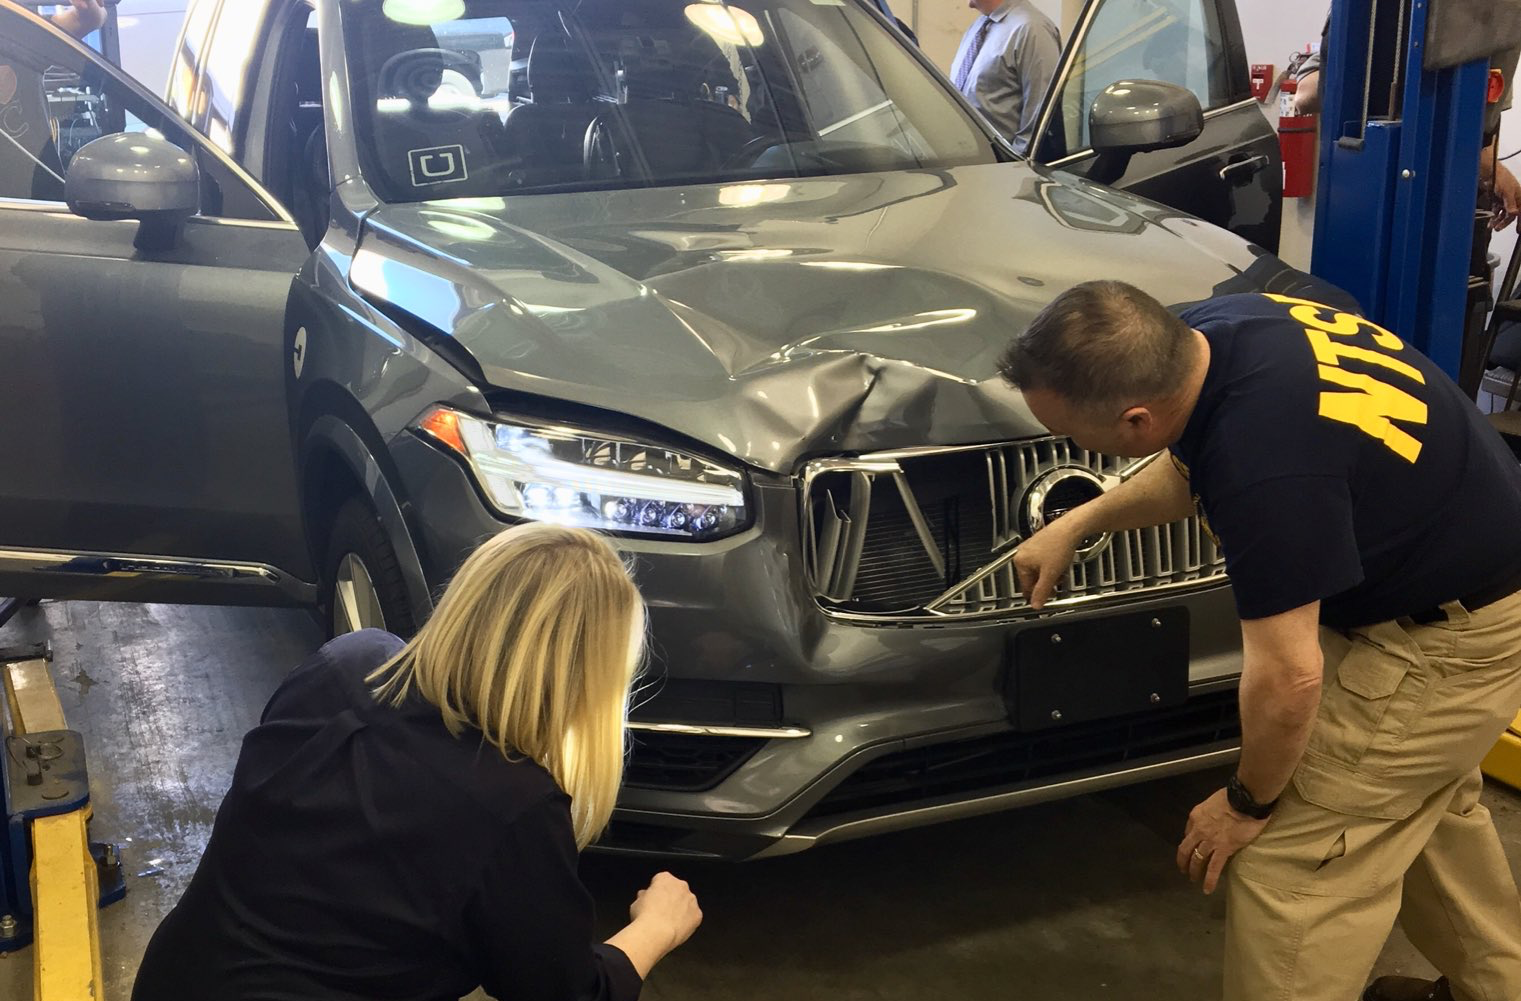 Uber won't face criminal charges in fatal Arizona self-driving crash